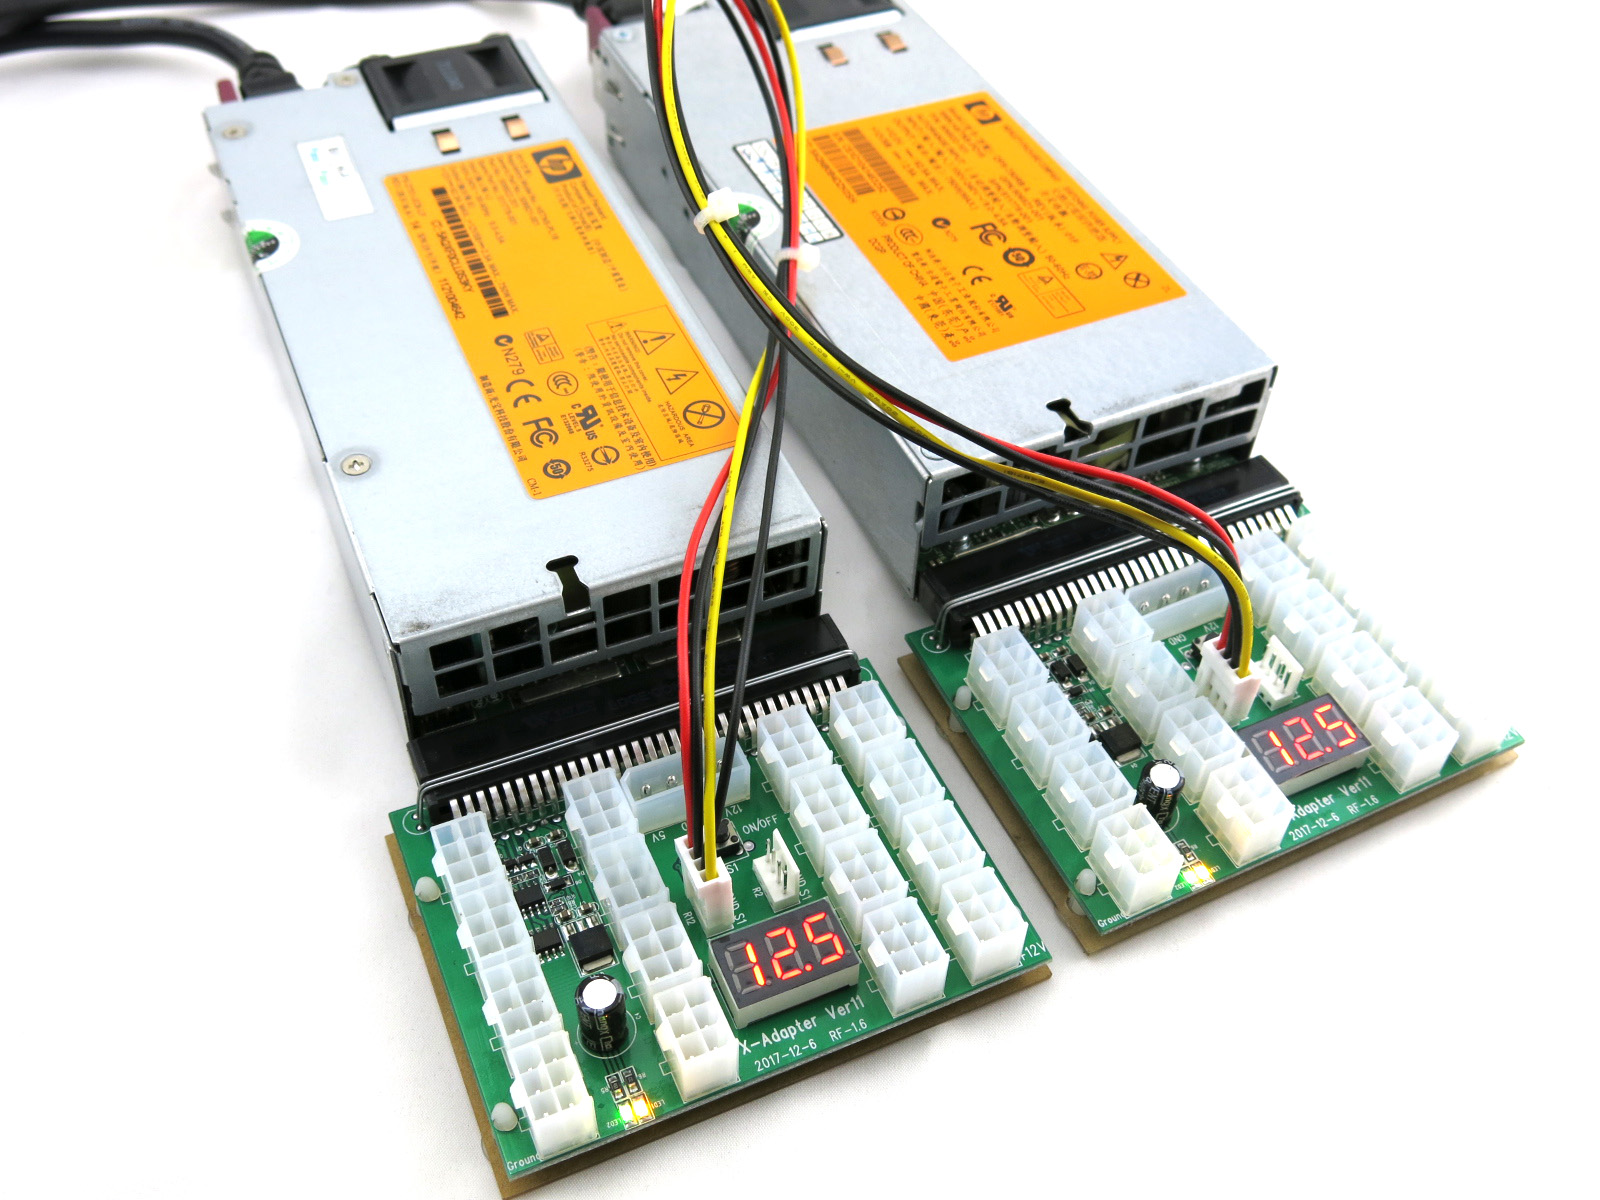 Interconnect sync cable attached to (2) X6B breakout boards to power off and on together